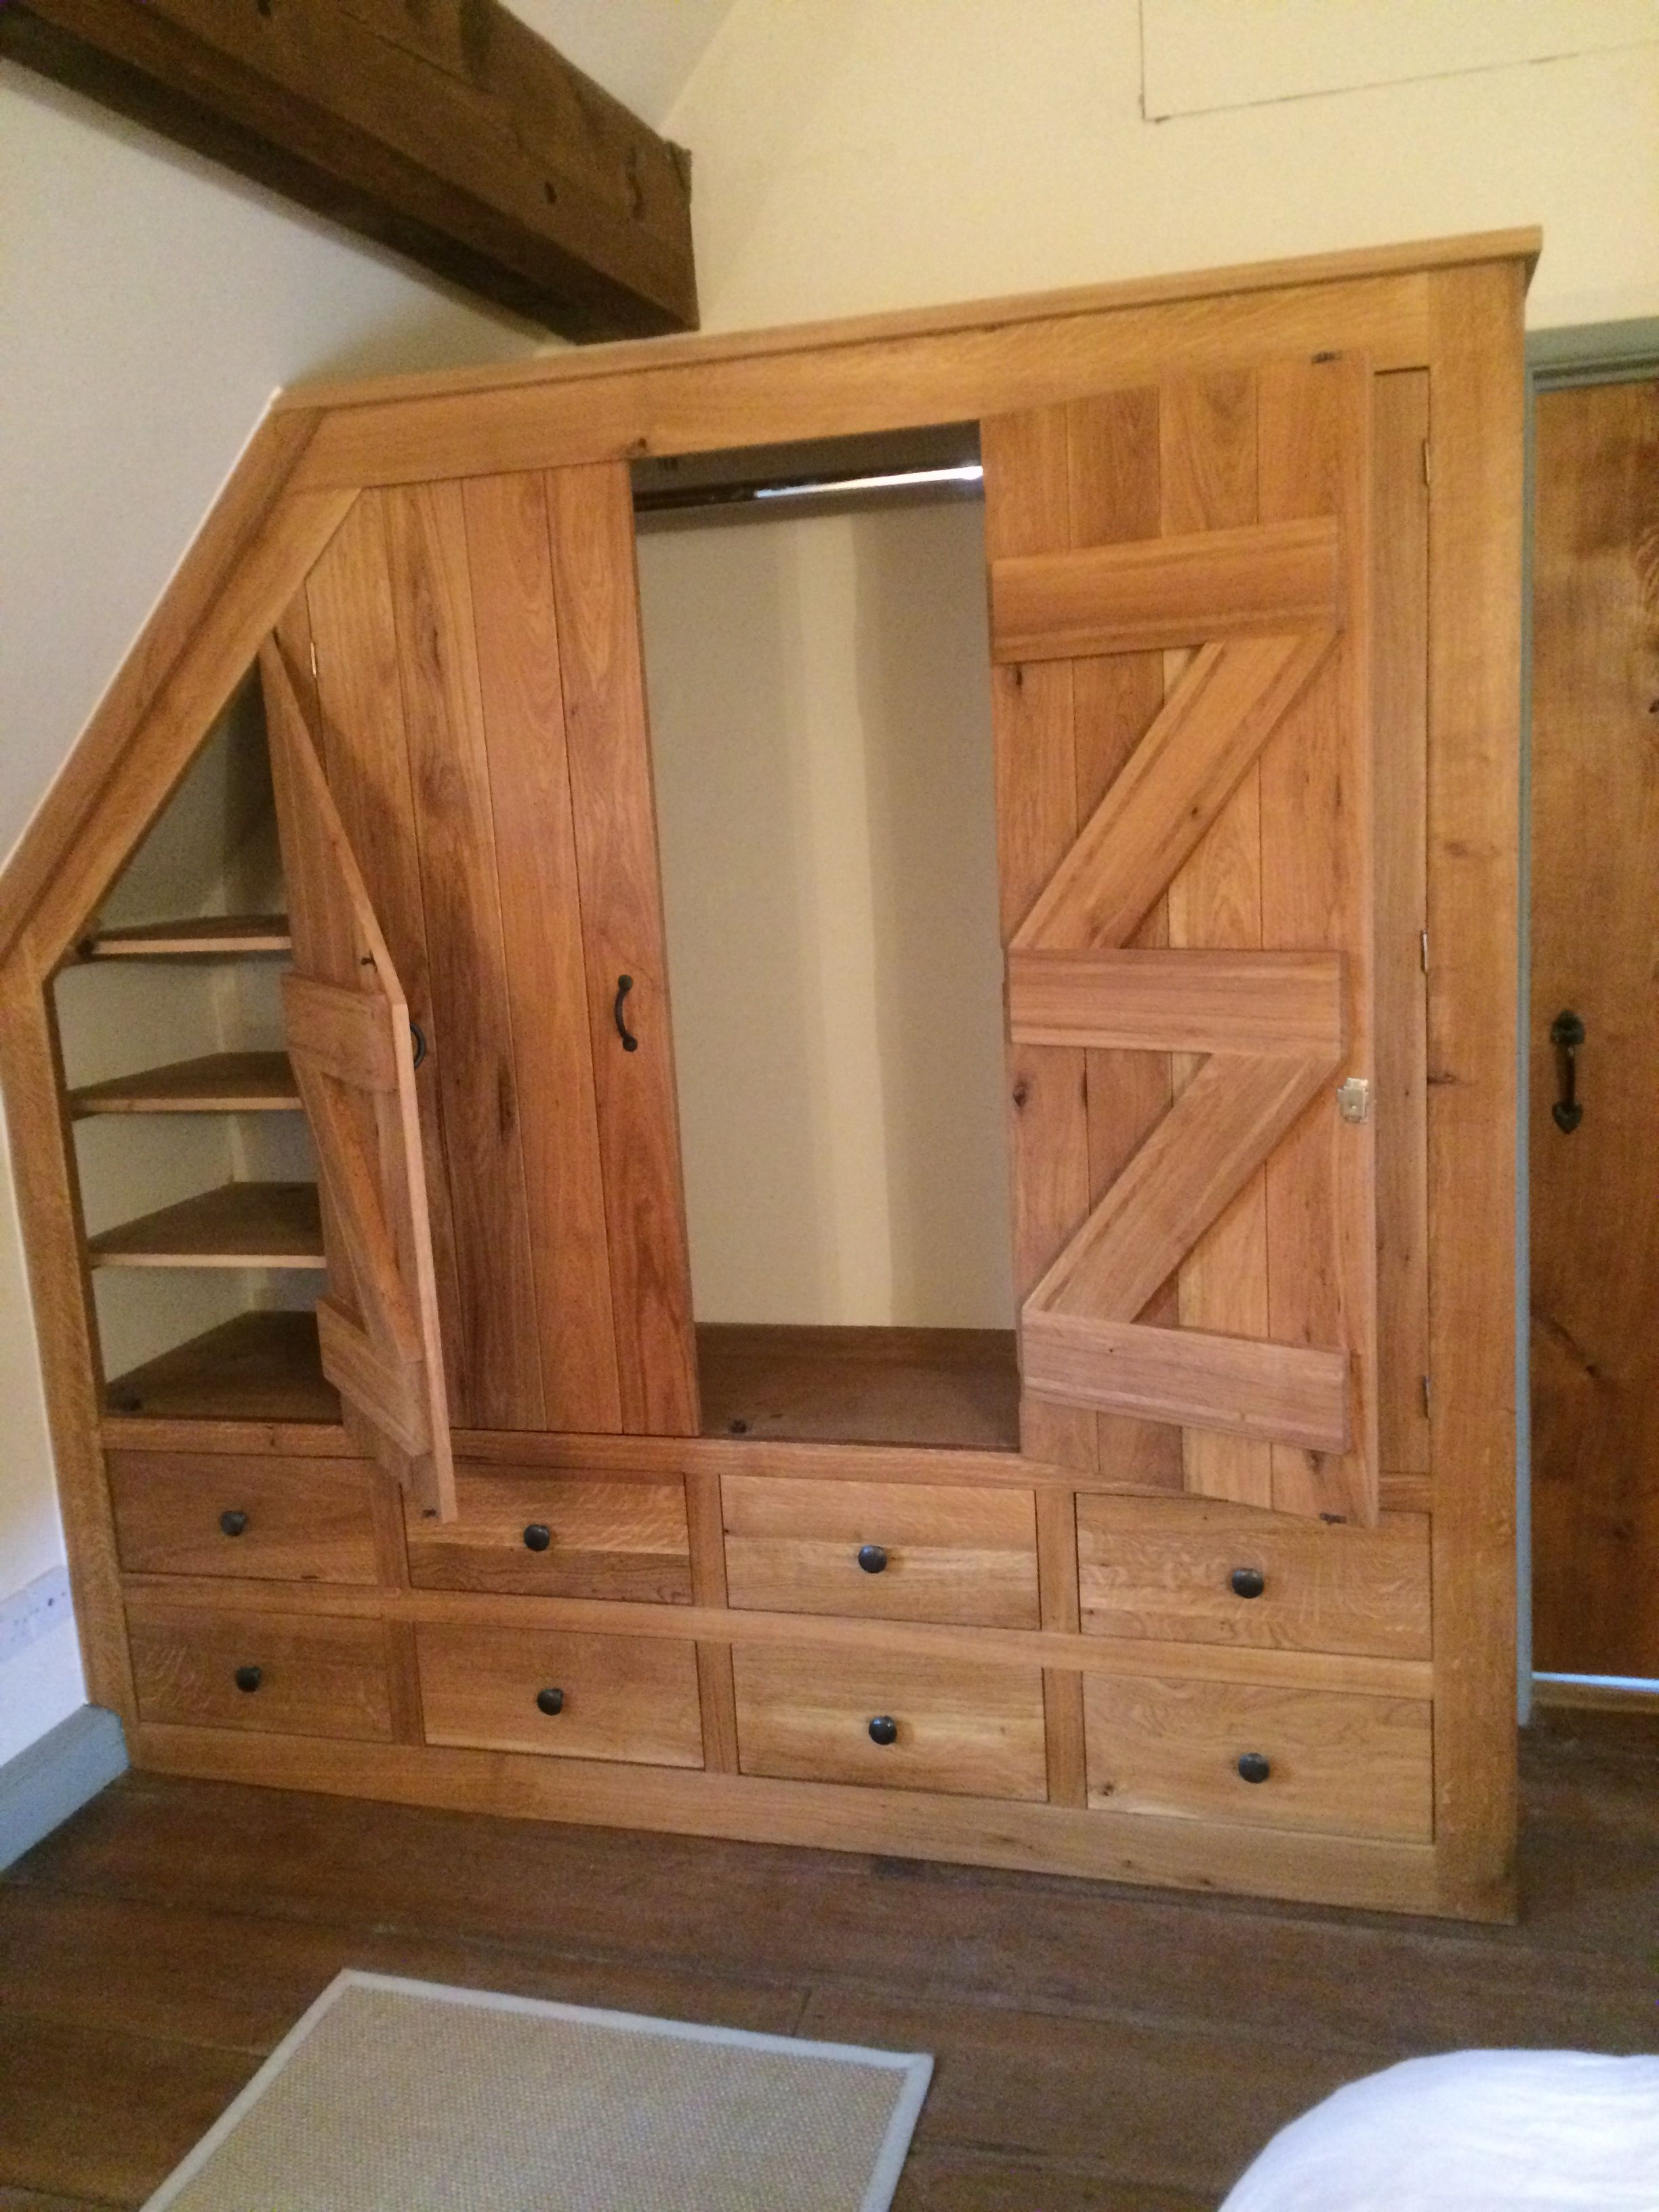 Ledge And Brace Doors Create A Traditional Feel To This Solid Oak Bespoke Fitted Wardrobe In Our Customer S Count Attic Flooring Attic Remodel Attic Renovation